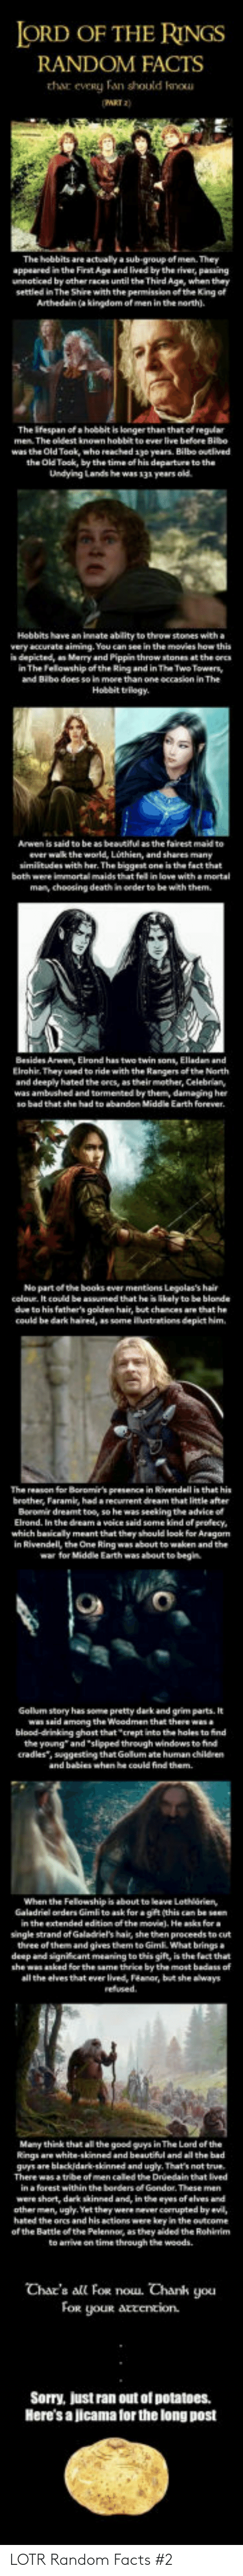 Advice, Bad, and Beautiful: ORD OF THE RINGS  RANDOM FACTS  thar  eveRy Fan should kou  AKT 2)  The hobbits are actually a sub-group of men. They  appeared in the First Age and lived by the river, pawing  unnoticed by other races until the Third Age, when they  settled in The Shire with the penmission of th. Kng of  Arthedain (a kingdom of men in the north).  The ifespan of a hobbit is longerthan that of regular  The oldest known  was the Old Took, who reached 1yo years. Bilbo ouelived  the Old Took, by the time of his departure to the  Undying Lands he was 13a years old  Hebbits have an innate ablity to theow stones with a  very accurate aiming. You can see in the movies how this  s depicted, an Merry and Pippin throw stones at the ores  n The Felowship of the Ring and in The Two Towersy  and Bibe does so in  Hobbit trilogy.  to be as beautiful  as the fairest maid to  ever wak the world, Lothien, and shares many  similitudes with her. The biggest one is the fact that  both were immortal maids that fel in love with amortal  man, choosing death in oeder to be with them.  Arwen, Elrond has  Elrohir They used to ride with the Rangers of the North  and deeply hated the orcs, as their mother, Celebrian,  was ambushed and tormented by them, damaging her  Earth forever  No partofthe books ever mentiens Legolas's hair  celoue. It could be assumed that he is likely to be blonde  due to his father's golden hair, but chances are that he  could be dark haired, as some ilustrations depict him  The reason for Boromir's presence in Rivendell is that his  brother, Faramis, had a recurrent dream that little after  Beromir dreamt toe, so he was seeking the advice o  Elrond. In the dream a veice said some kind ef profecy  which basicaly meant that they should look for Aragan  in Rivendell, the One Ring was about to waken and the  war for Middle Earth was about te begin  Gollum story has some pretty dark and grim parts. It  among the  blood-drinking ghost that crept into the holes to 